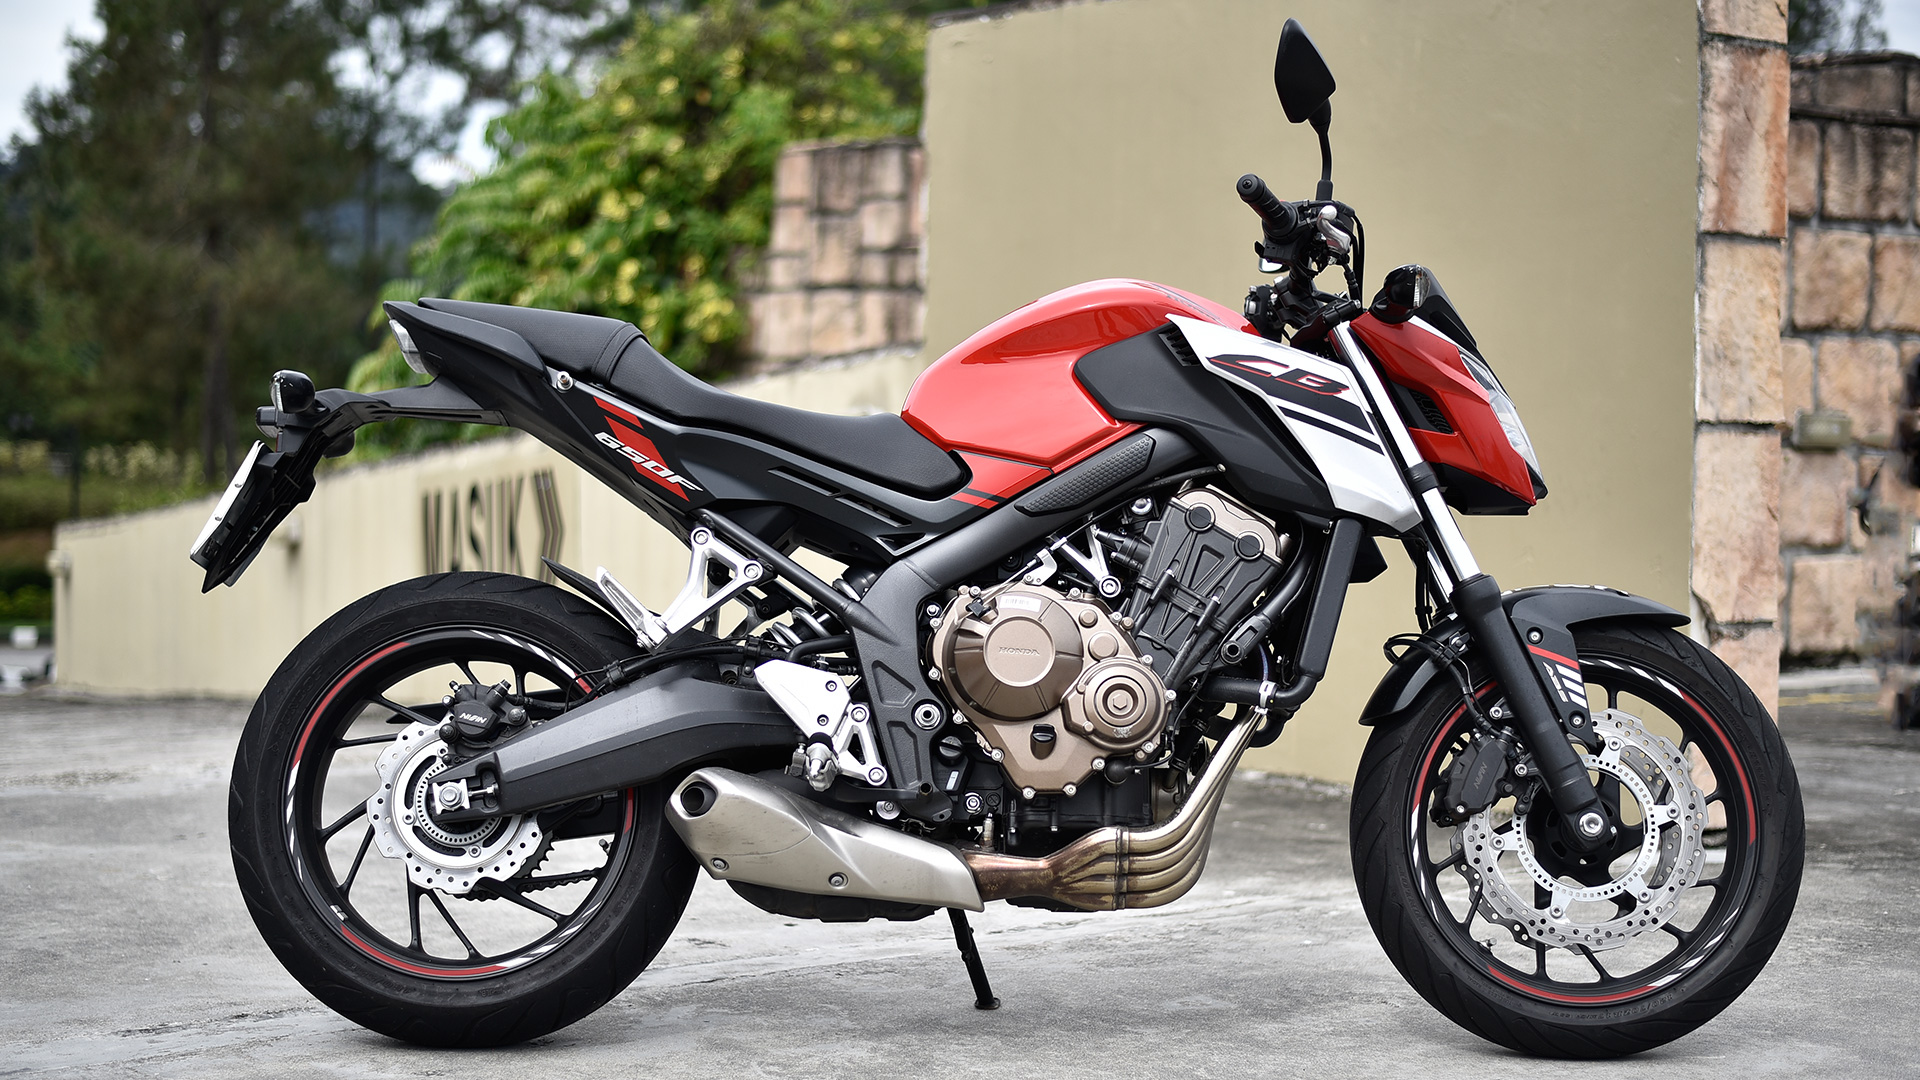 Honda CB650F 2017 - Price, Mileage, Reviews, Specification, Gallery - Overdrive